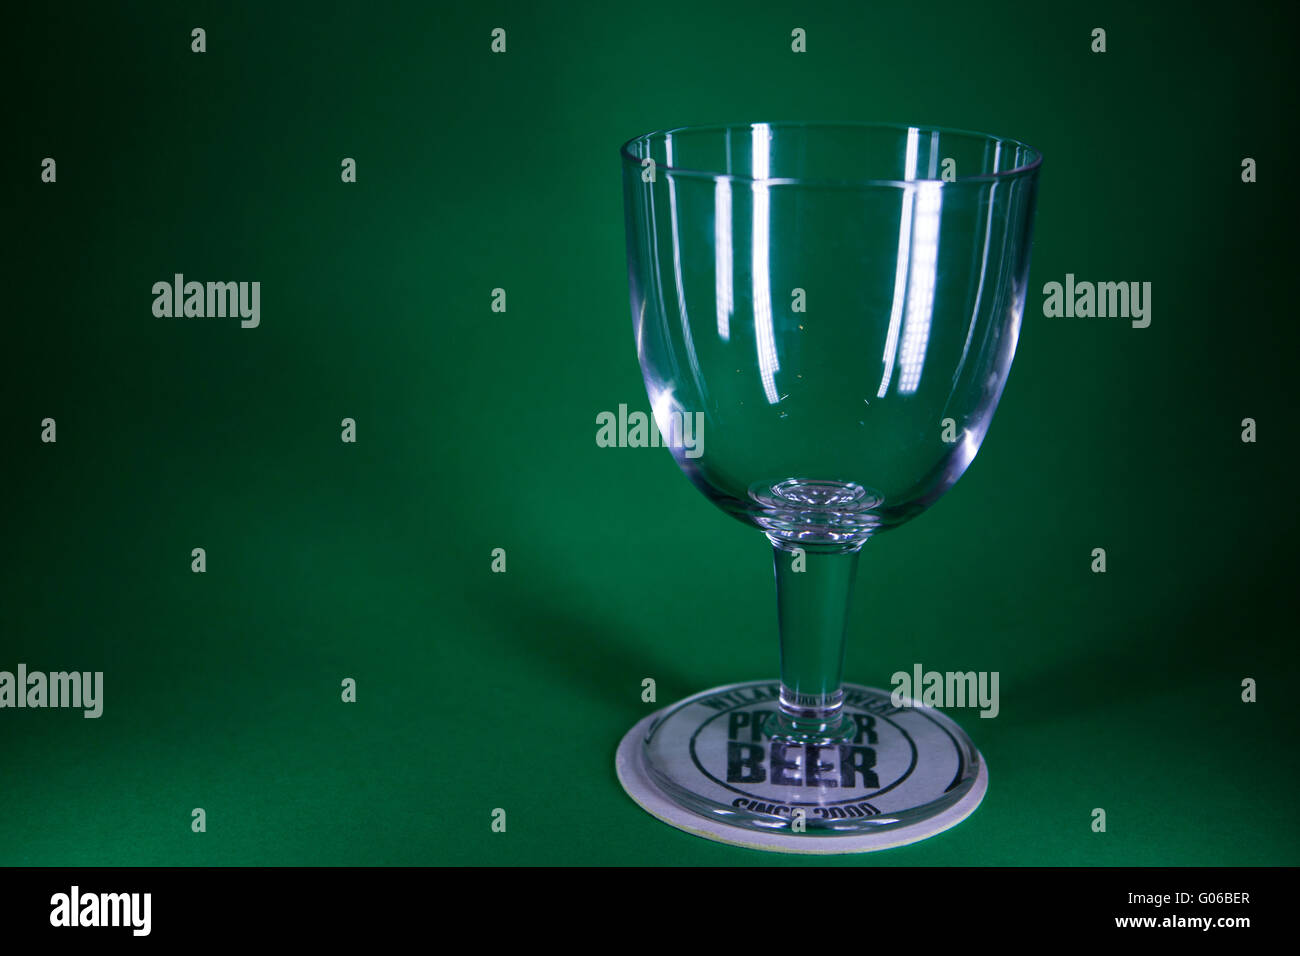 A beer glass stands on a beer mat. The scene has a green background. Stock Photo